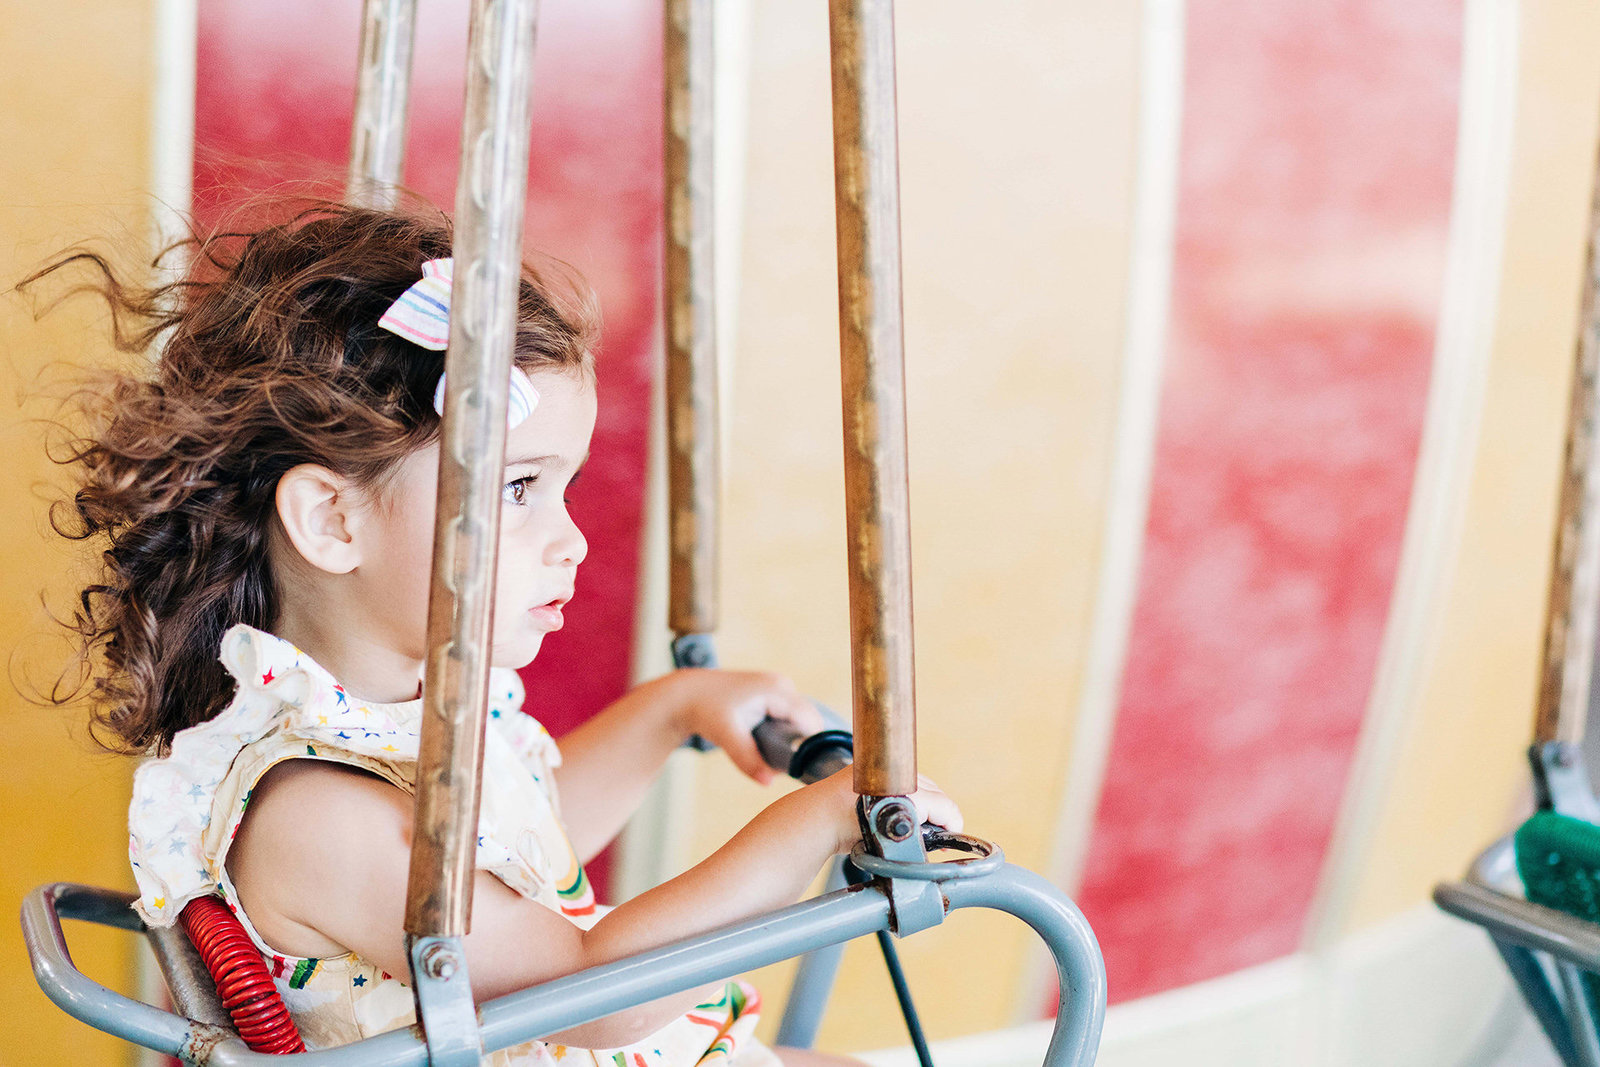 Portrait of a little girl at an amusement park